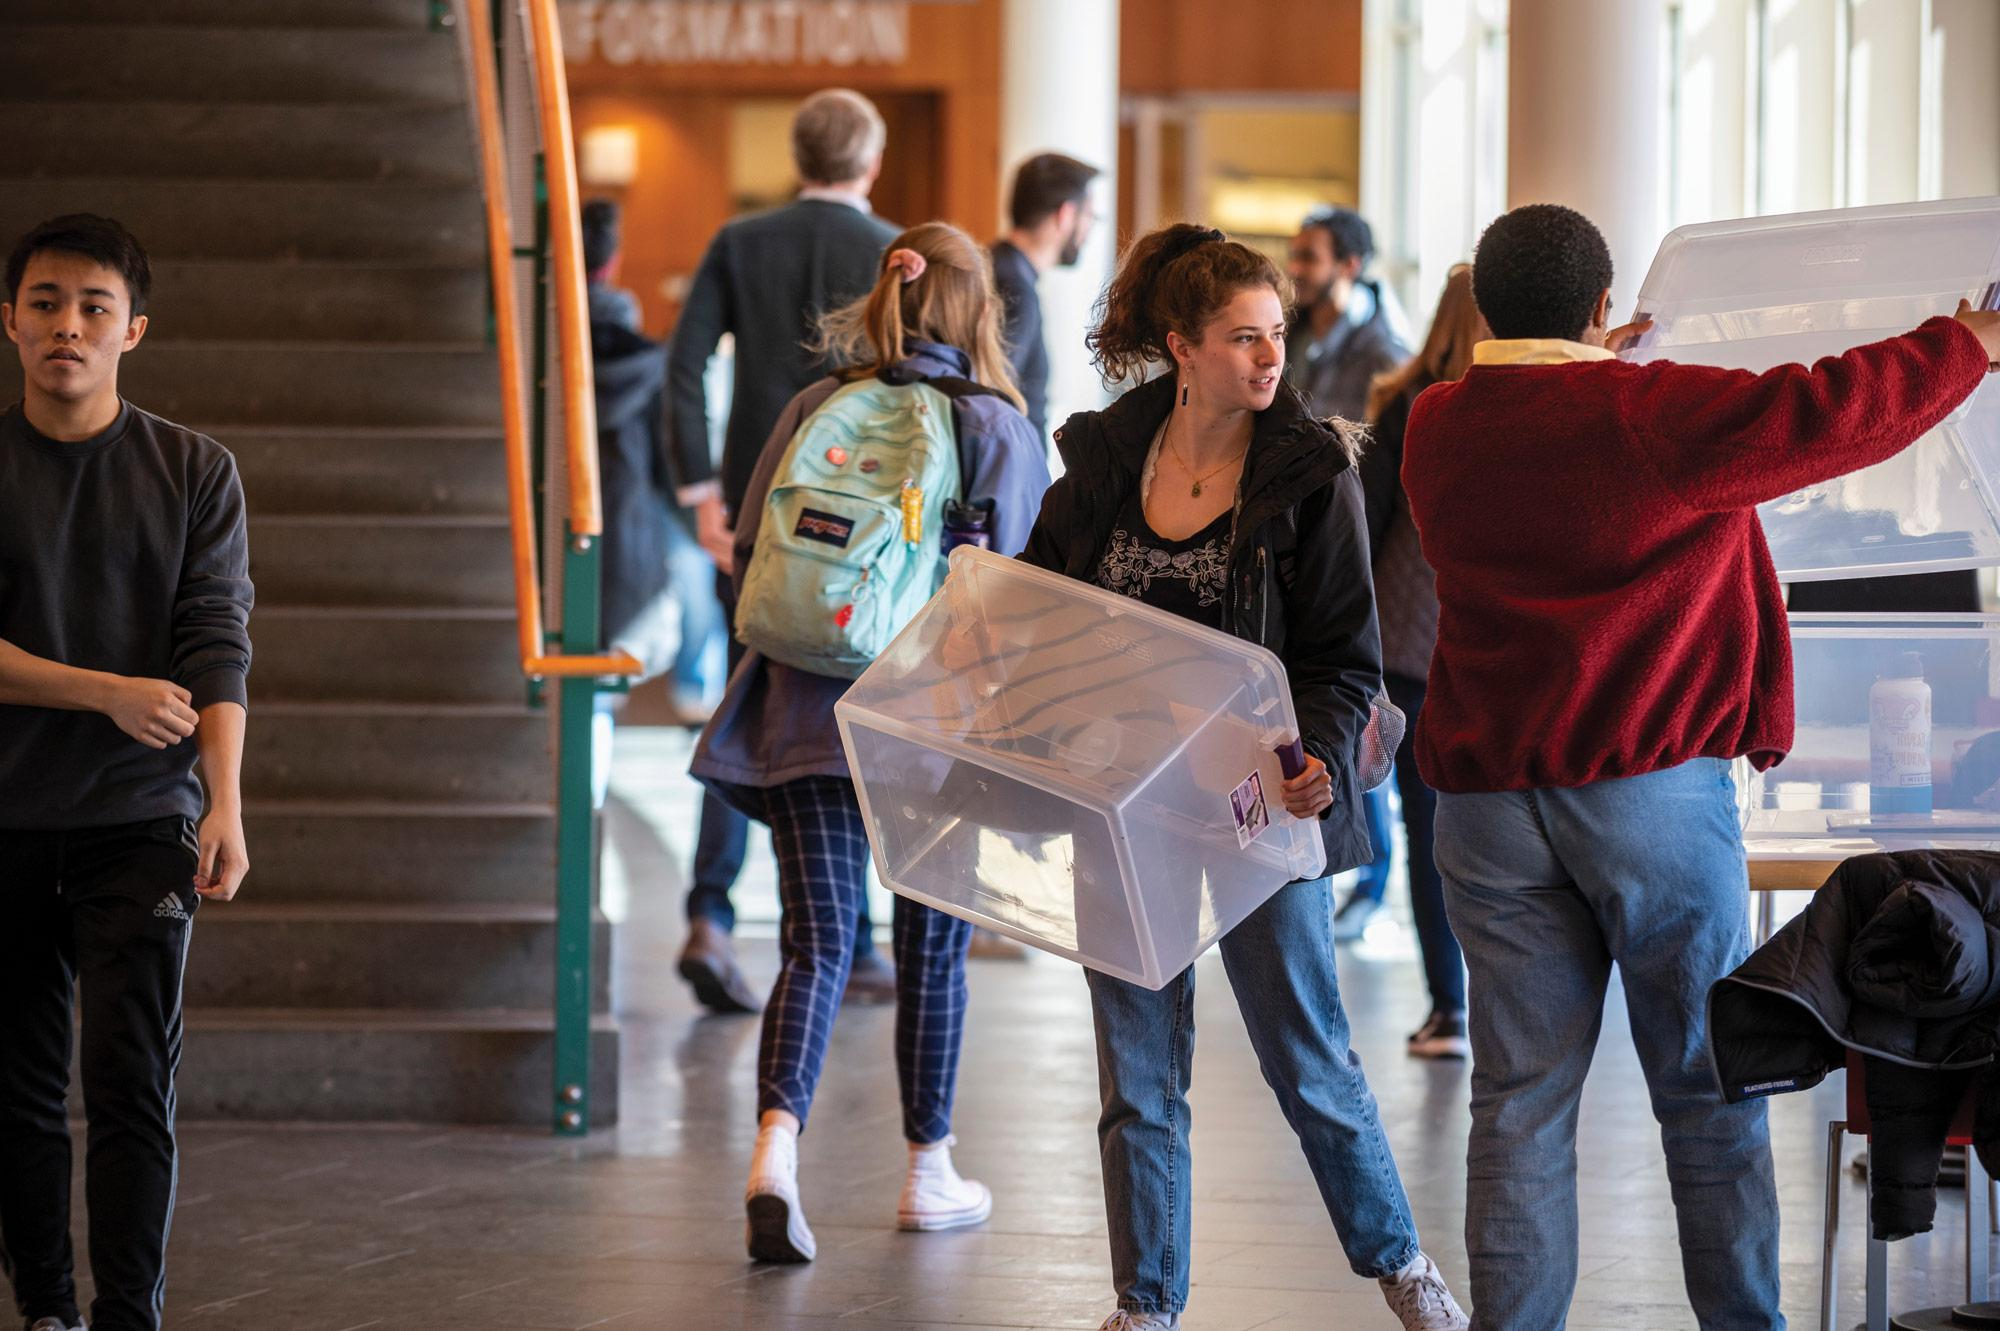 Students pick up totes to pack their belongings before leaving campus.